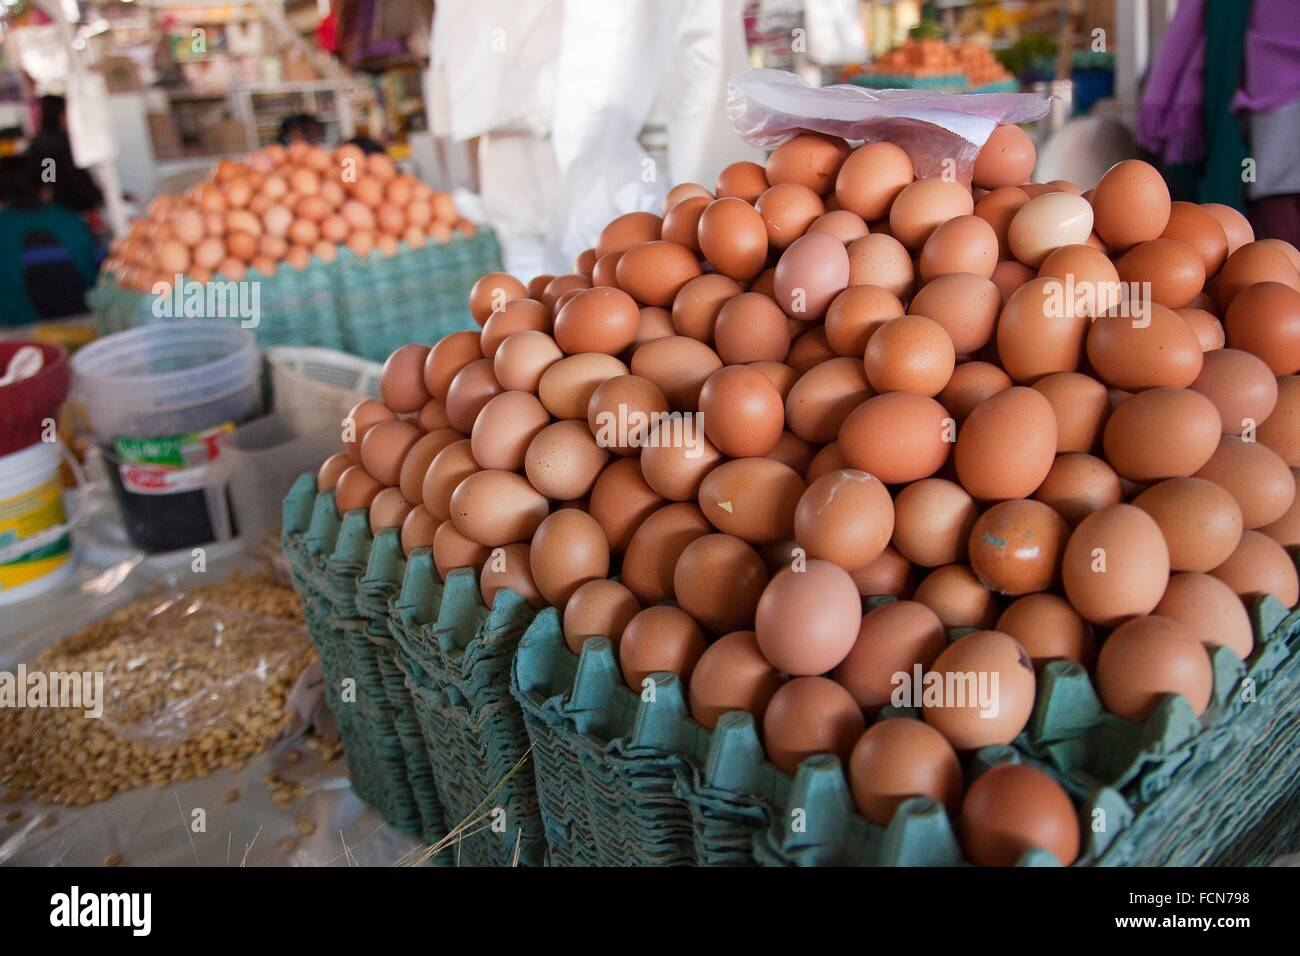 Eggs In Sale On Market Stock Photos & Eggs In Sale On Market